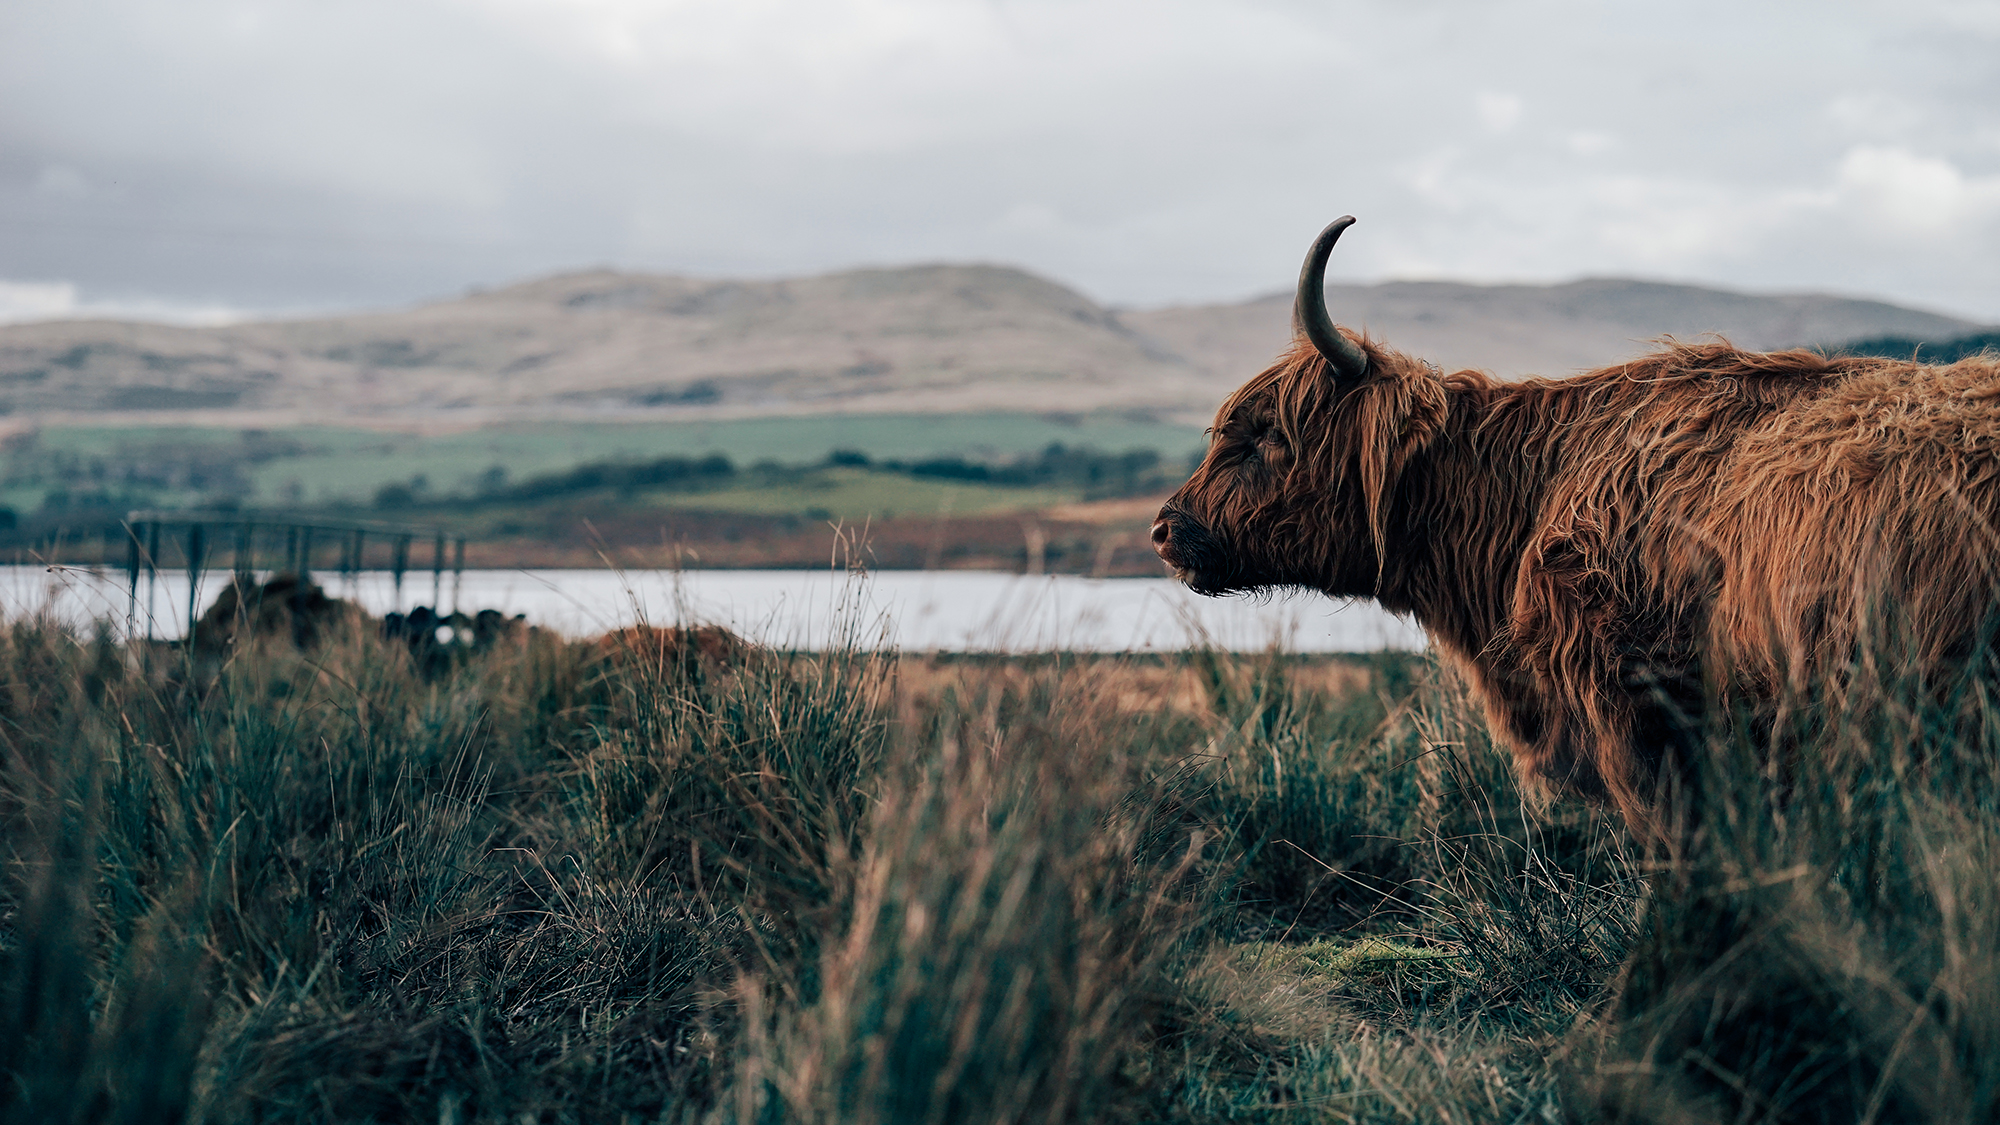 Highland Cattle Snowdonia | Zeiss Lenspire